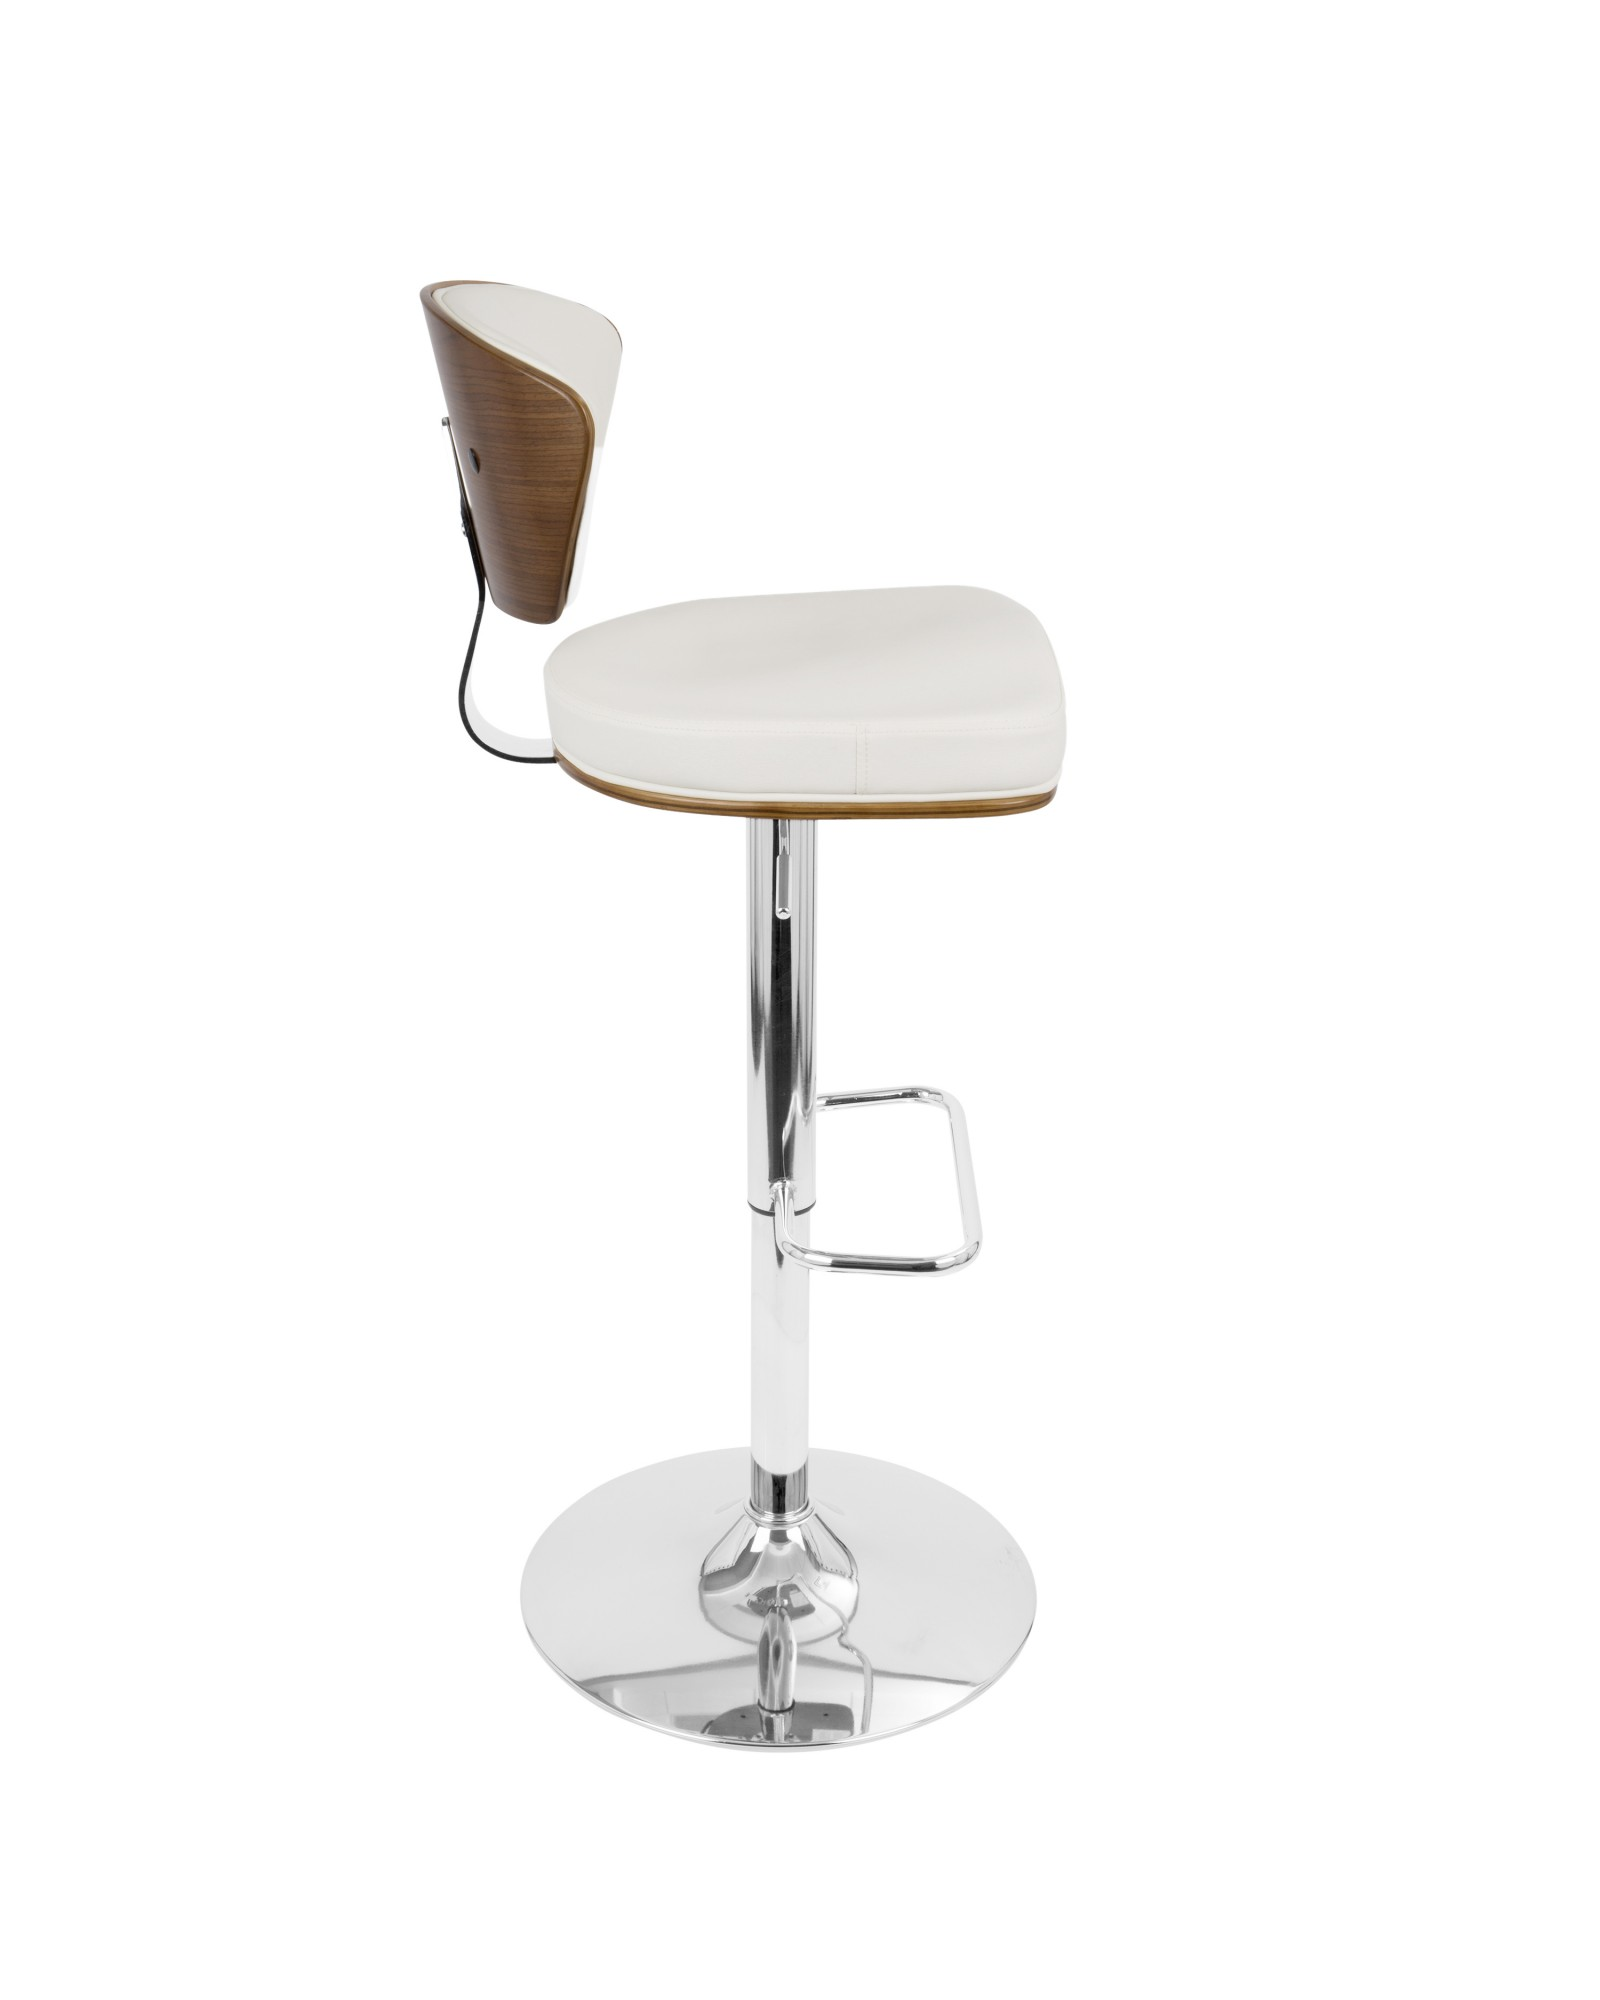 Ravinia Mid-Century Modern Adjustable Barstool with Swivel in Walnut and White Faux Leather